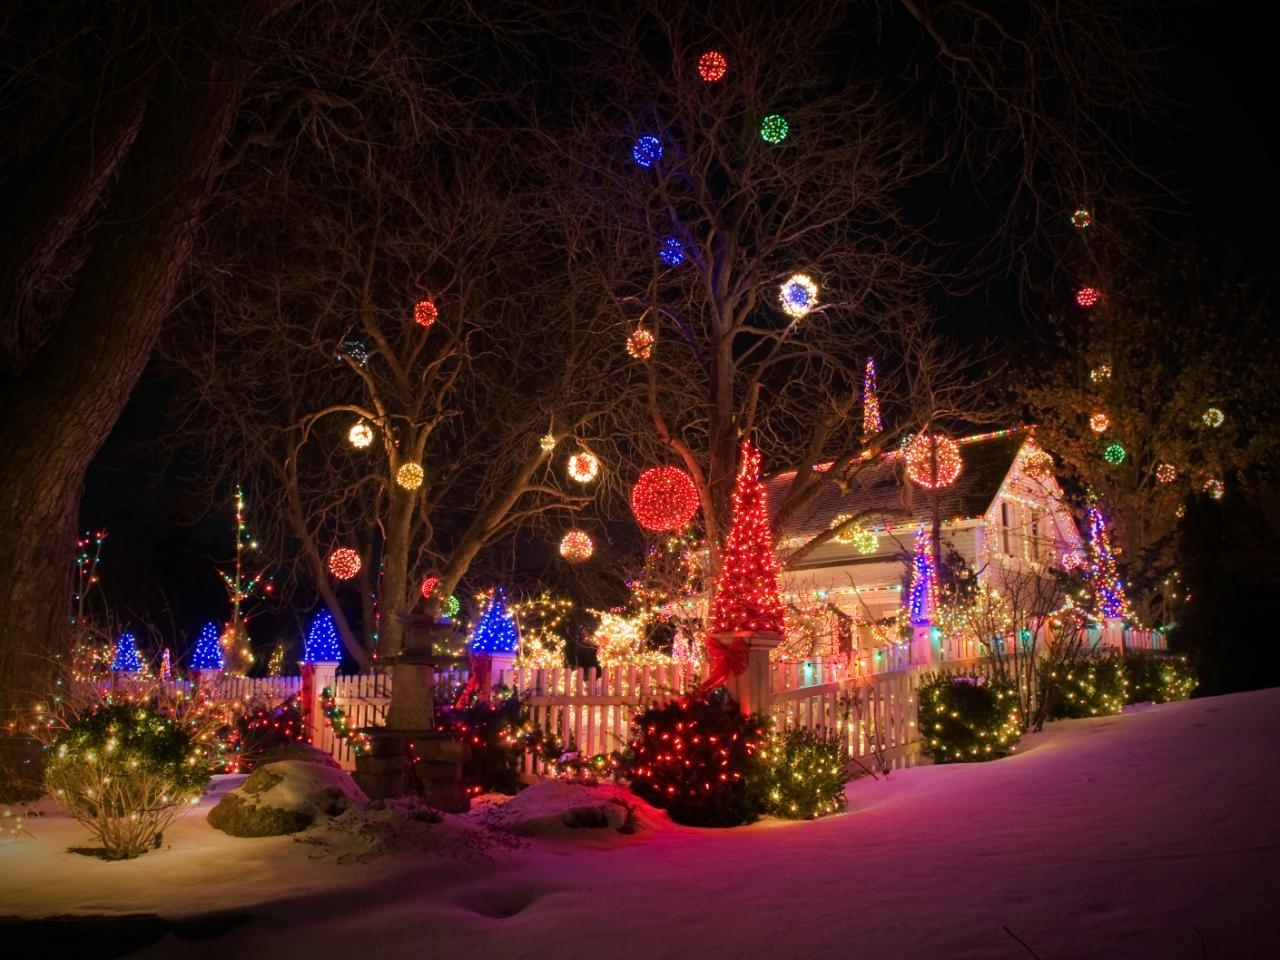 Outdoor Christmas Lights For Tree : 6 Tips For Outdoor Christmas In Outdoor Hanging Christmas Light Balls (View 8 of 15)